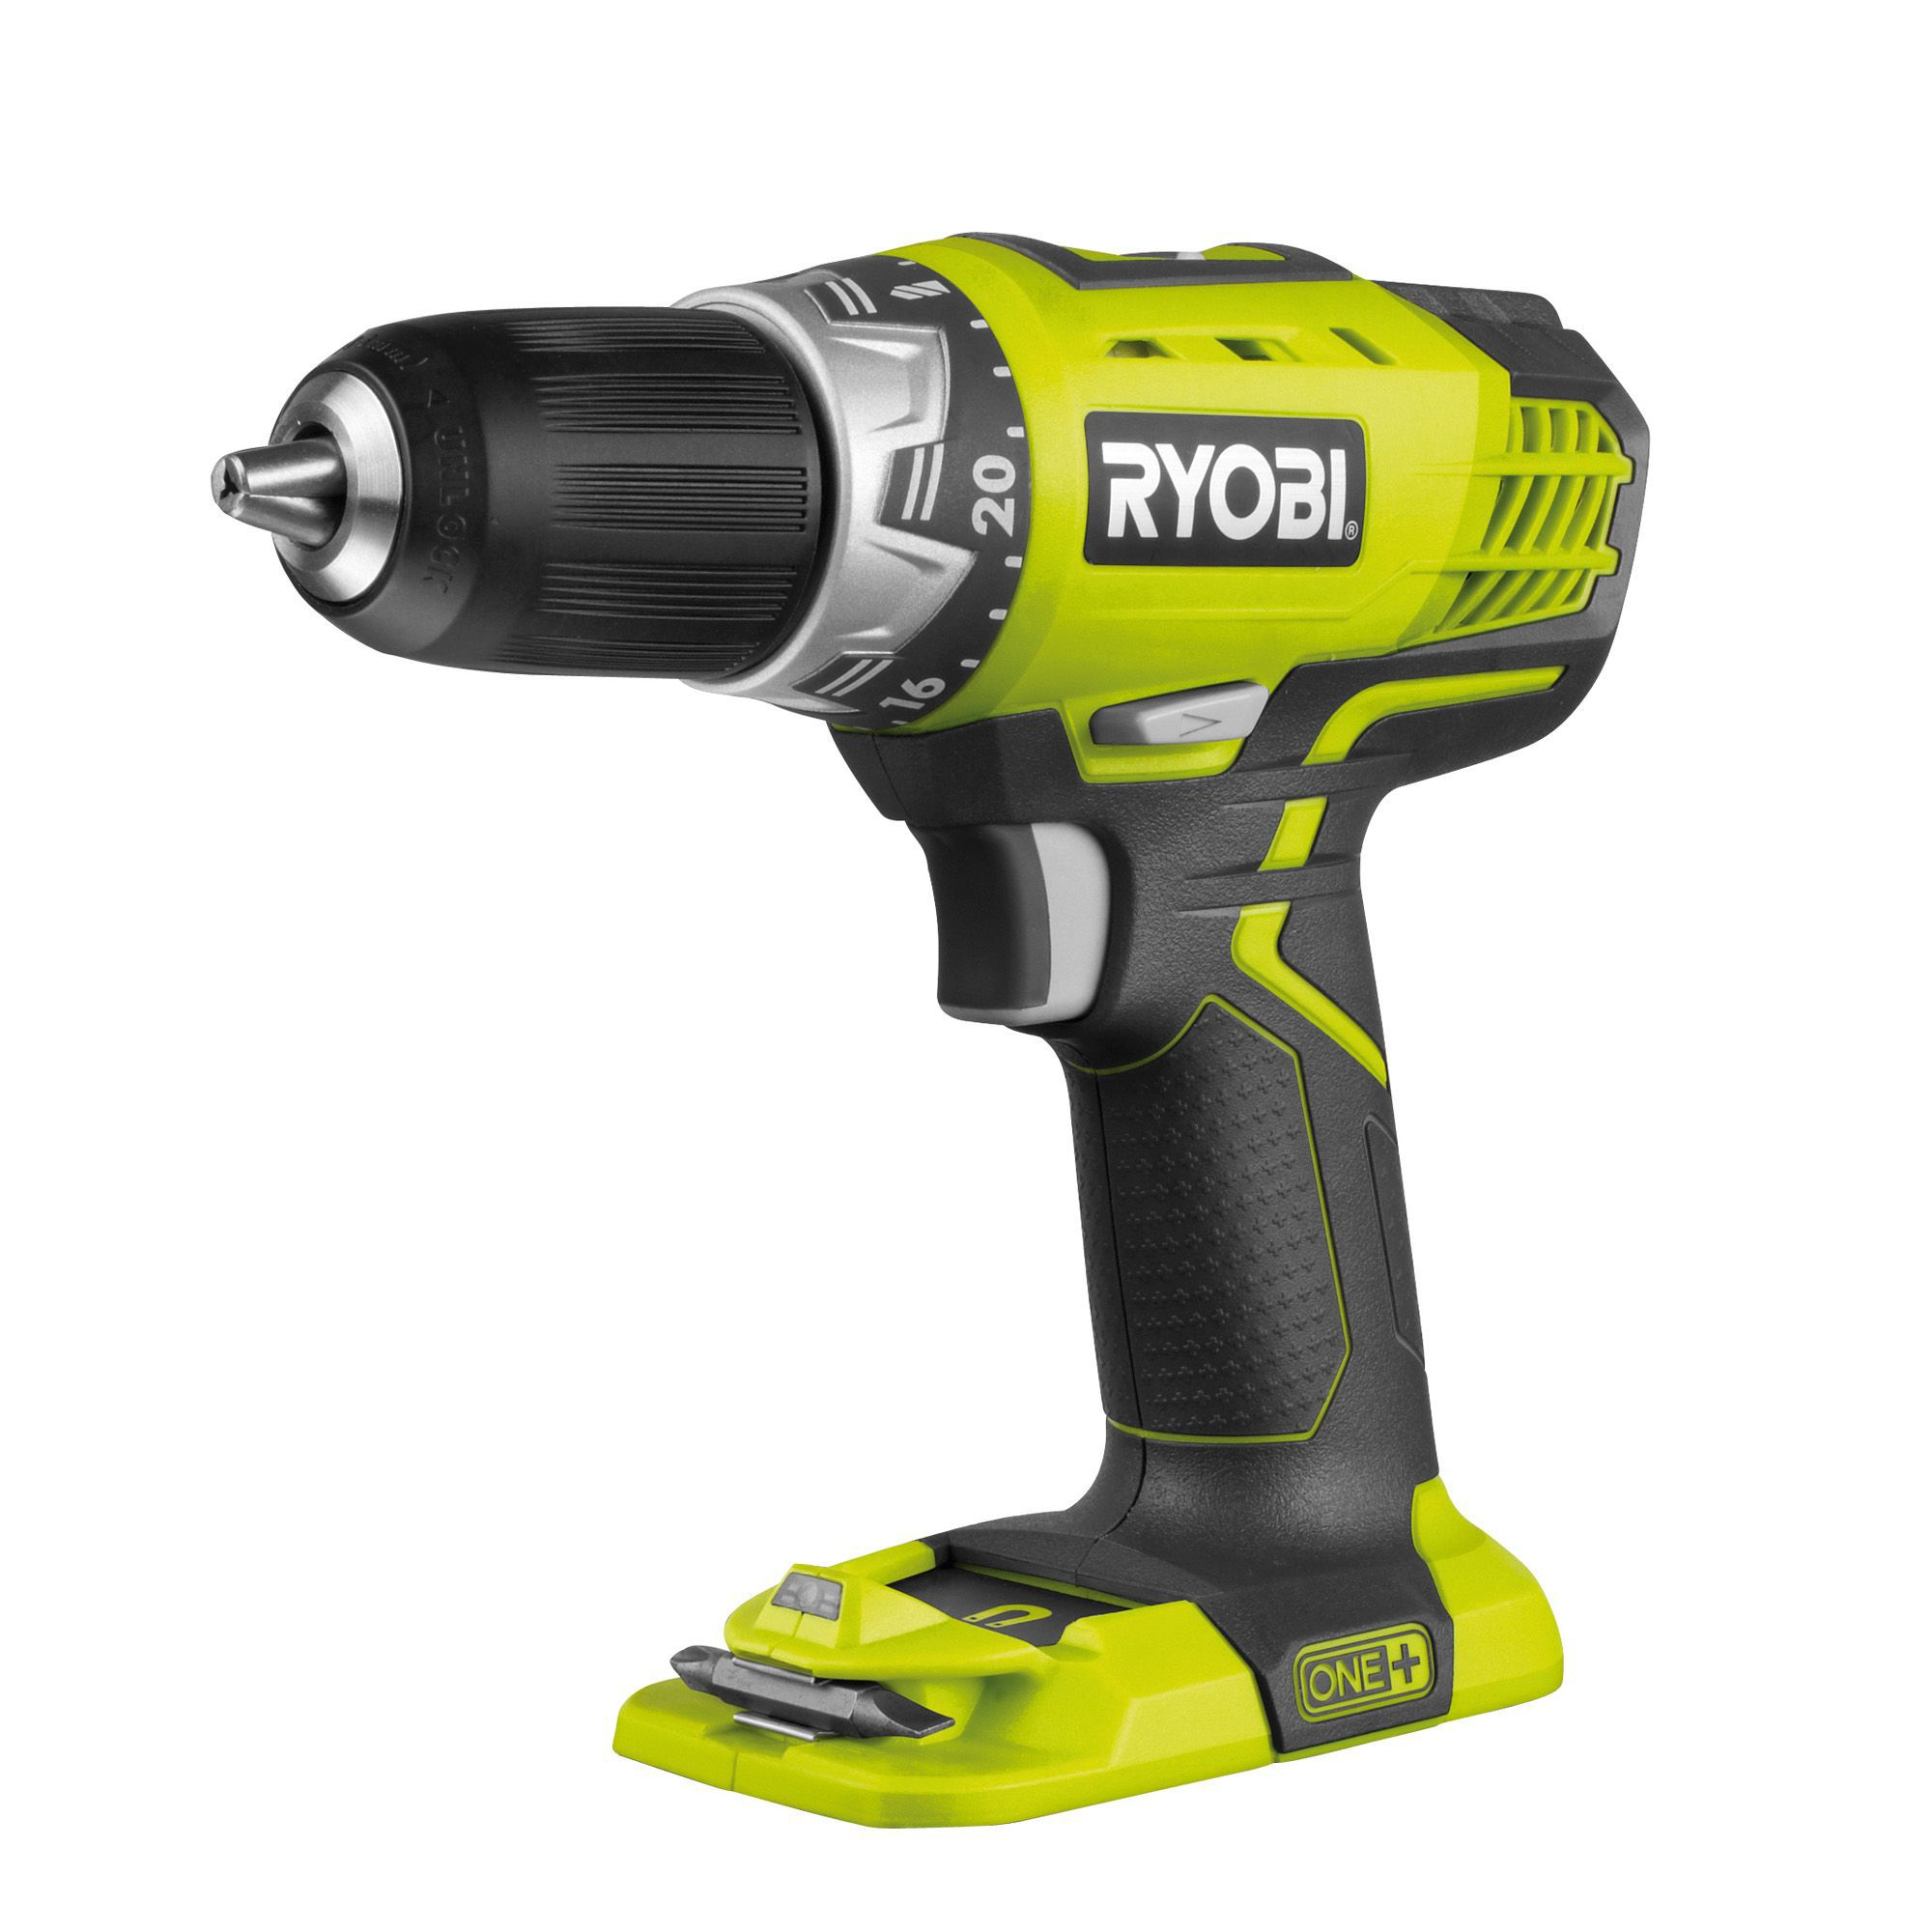 Ryobi One+ Cordless 18v Drill Driver Without Batteries Rcd1802m-bare